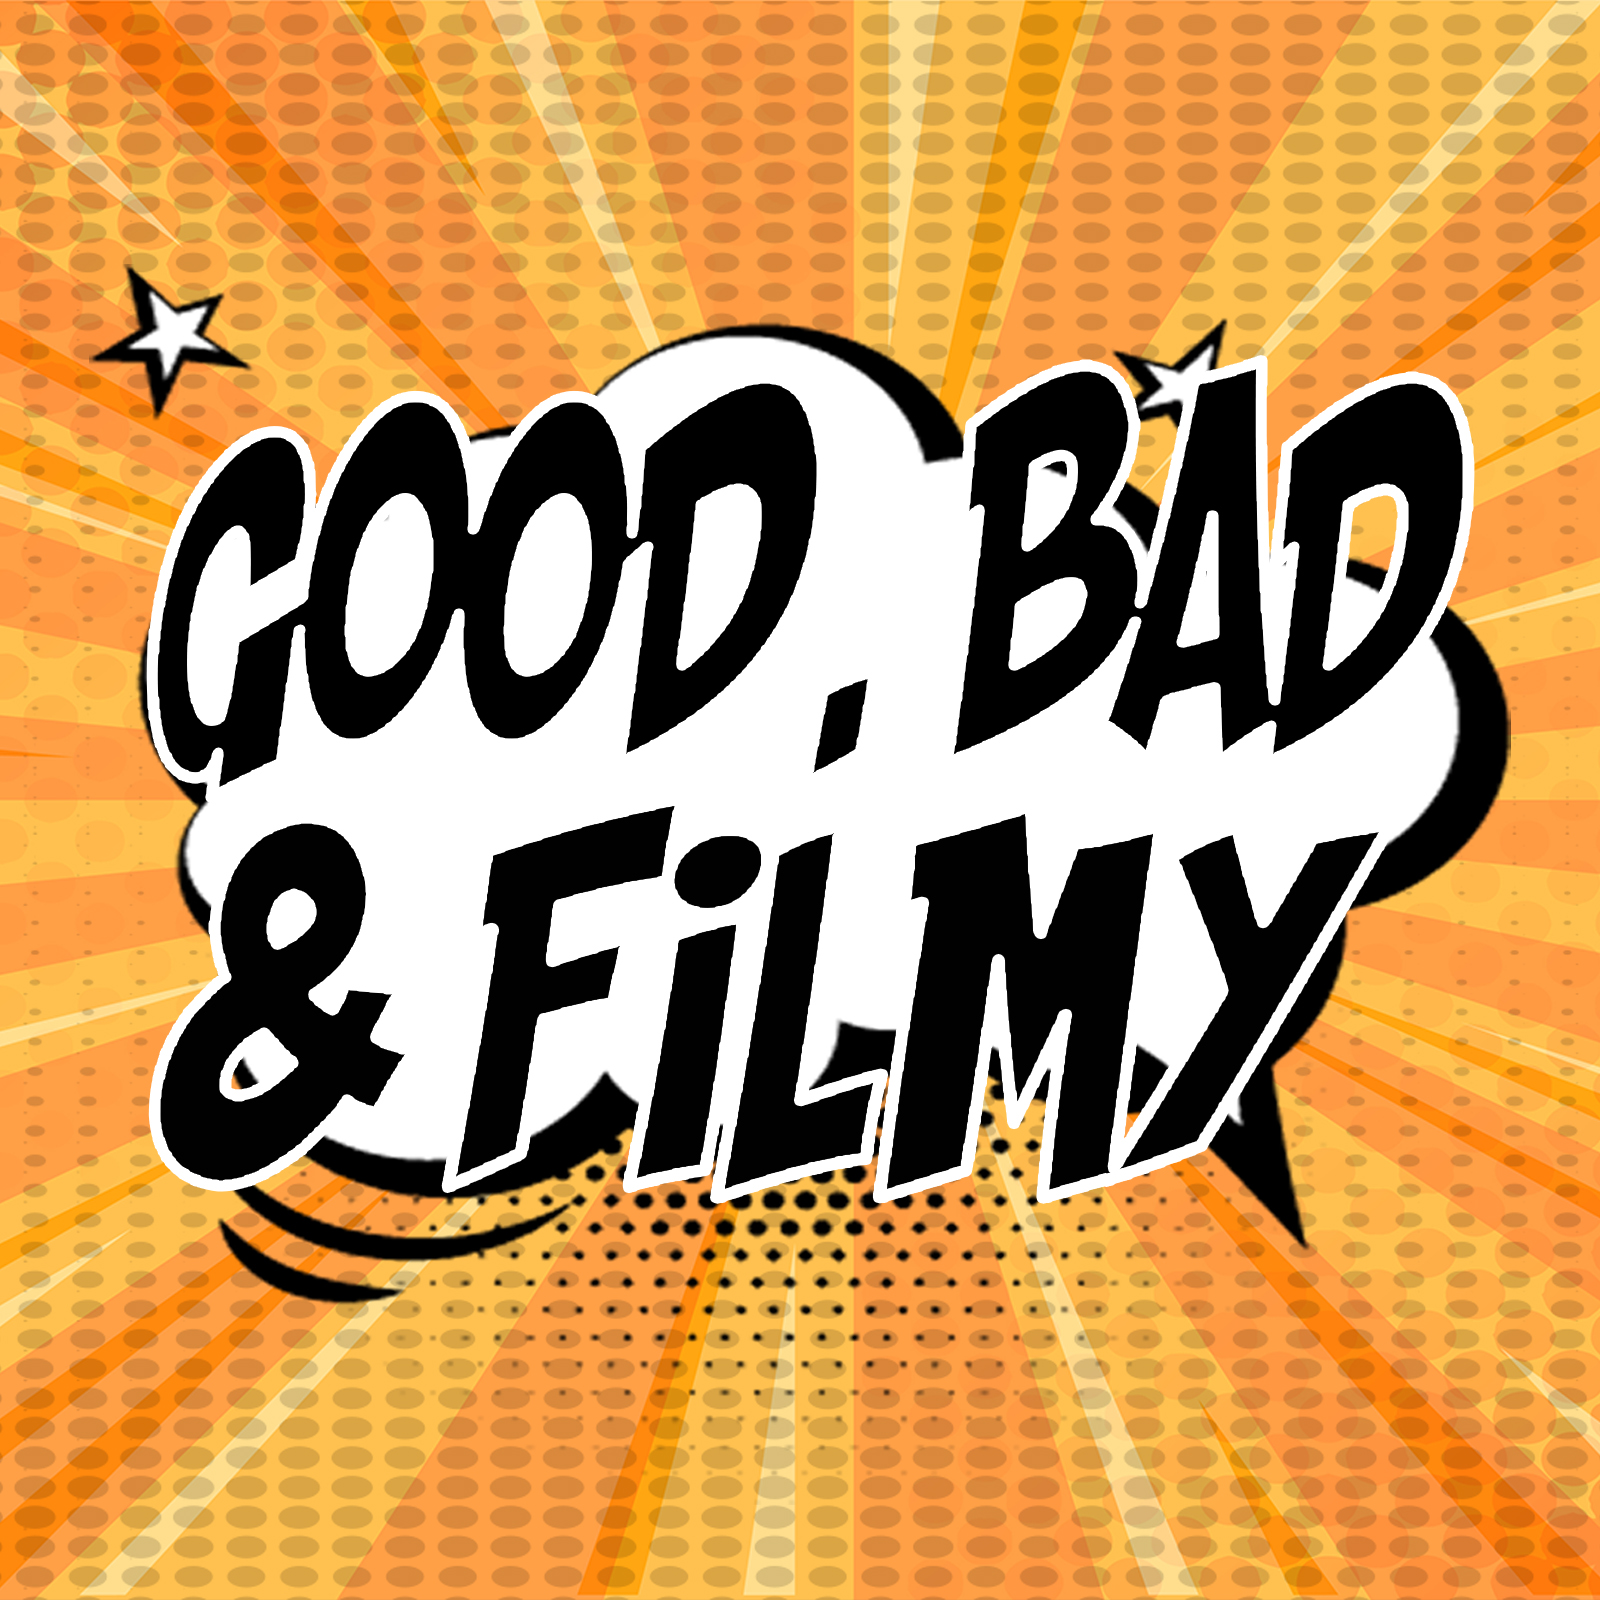 Our resident movie reviewers Harsh and Shreyas break down the Good, Bad and Filmy for the hottest movies and shows out there. Subscribe on Youtube or their podcast to keep up with new weekly episodes.